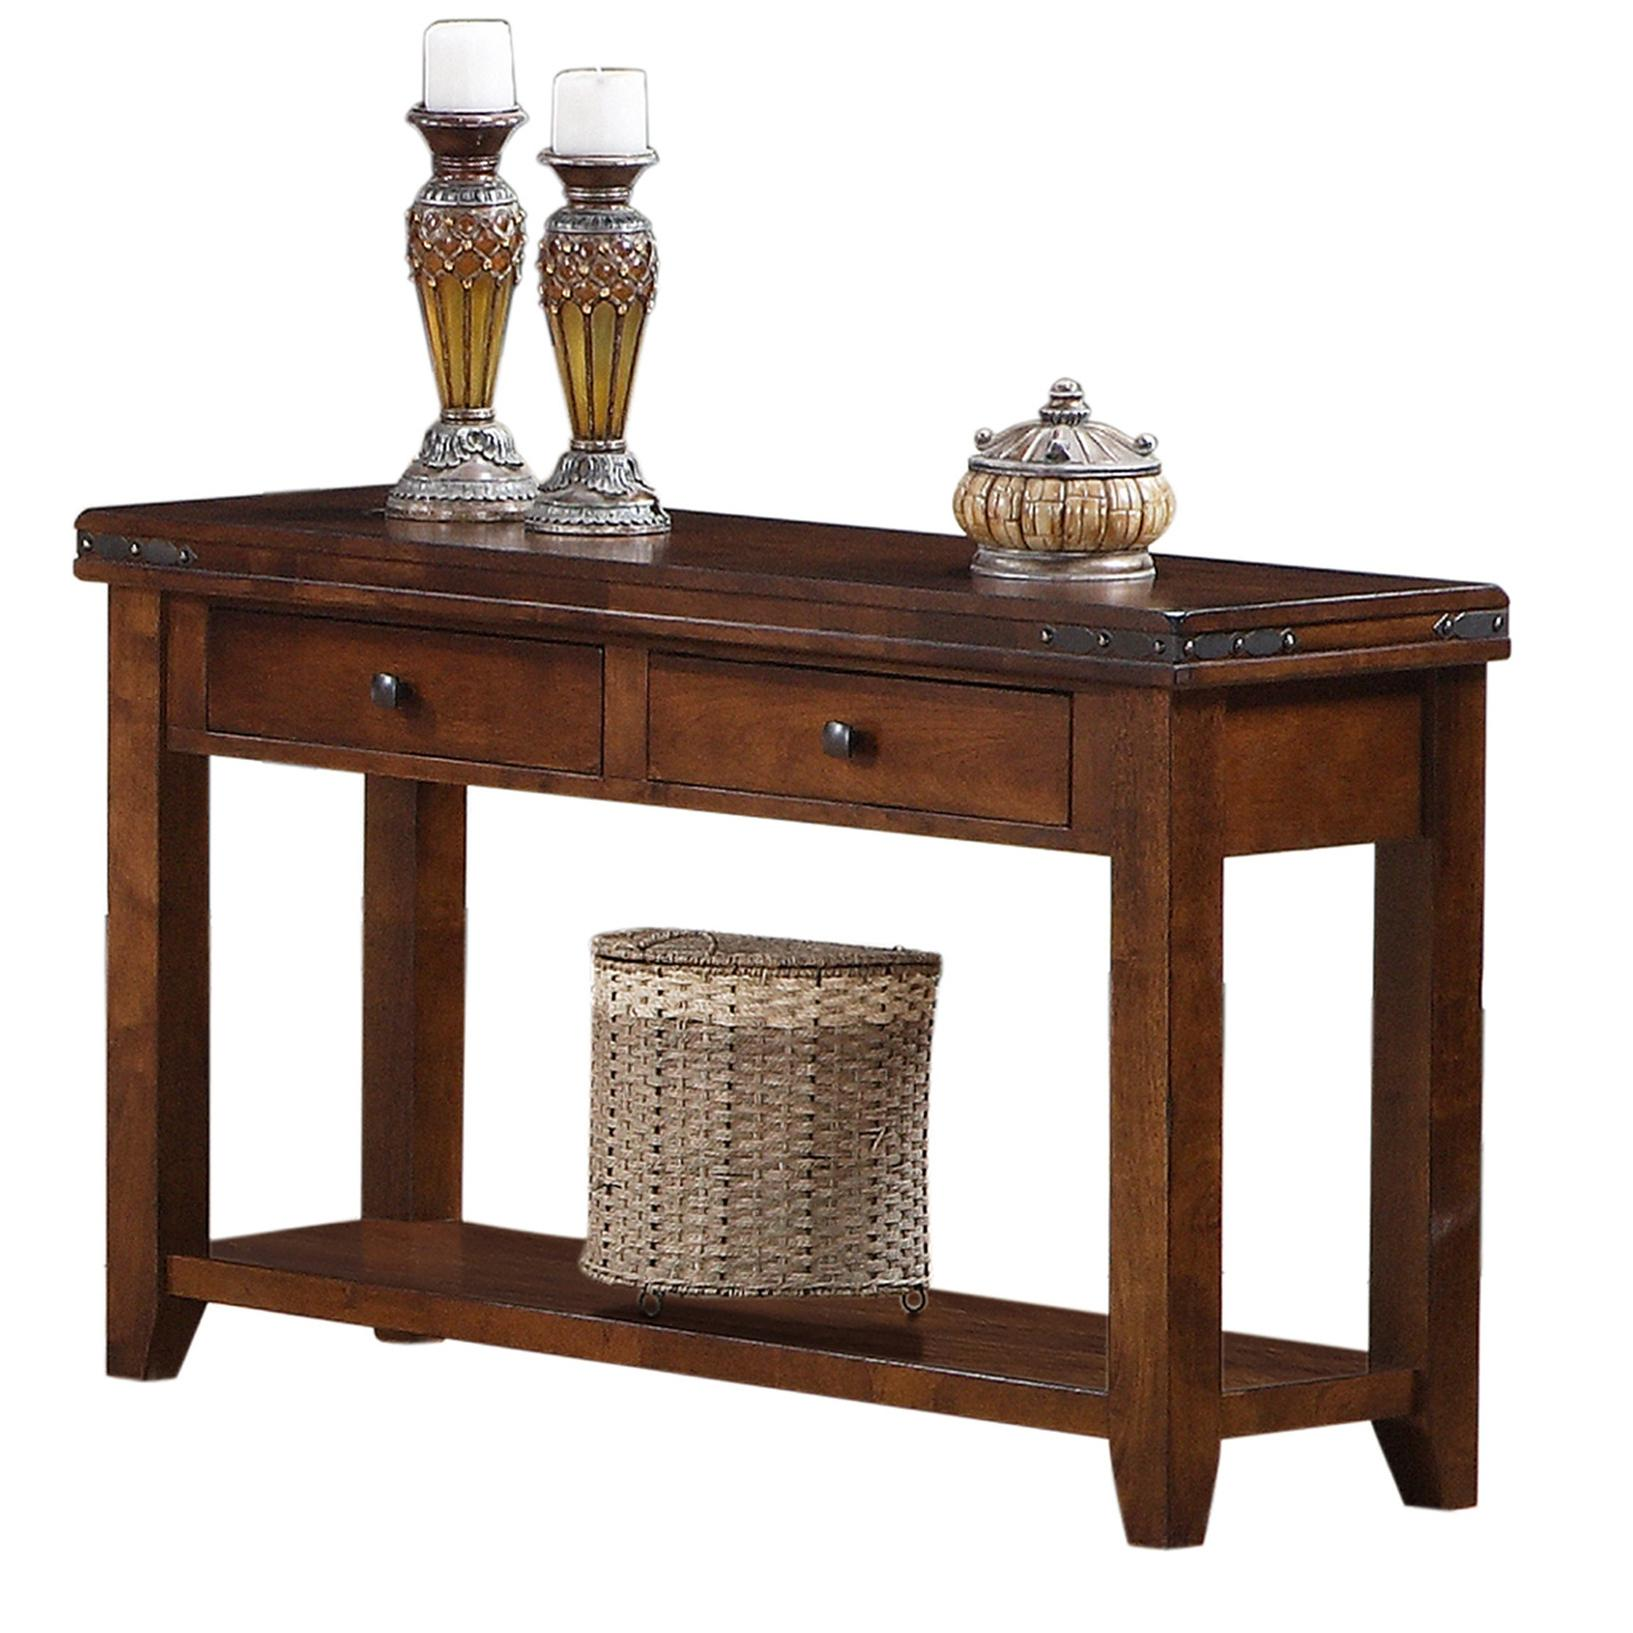 Coventry sofa table morris home sofa table Morris home furniture hours